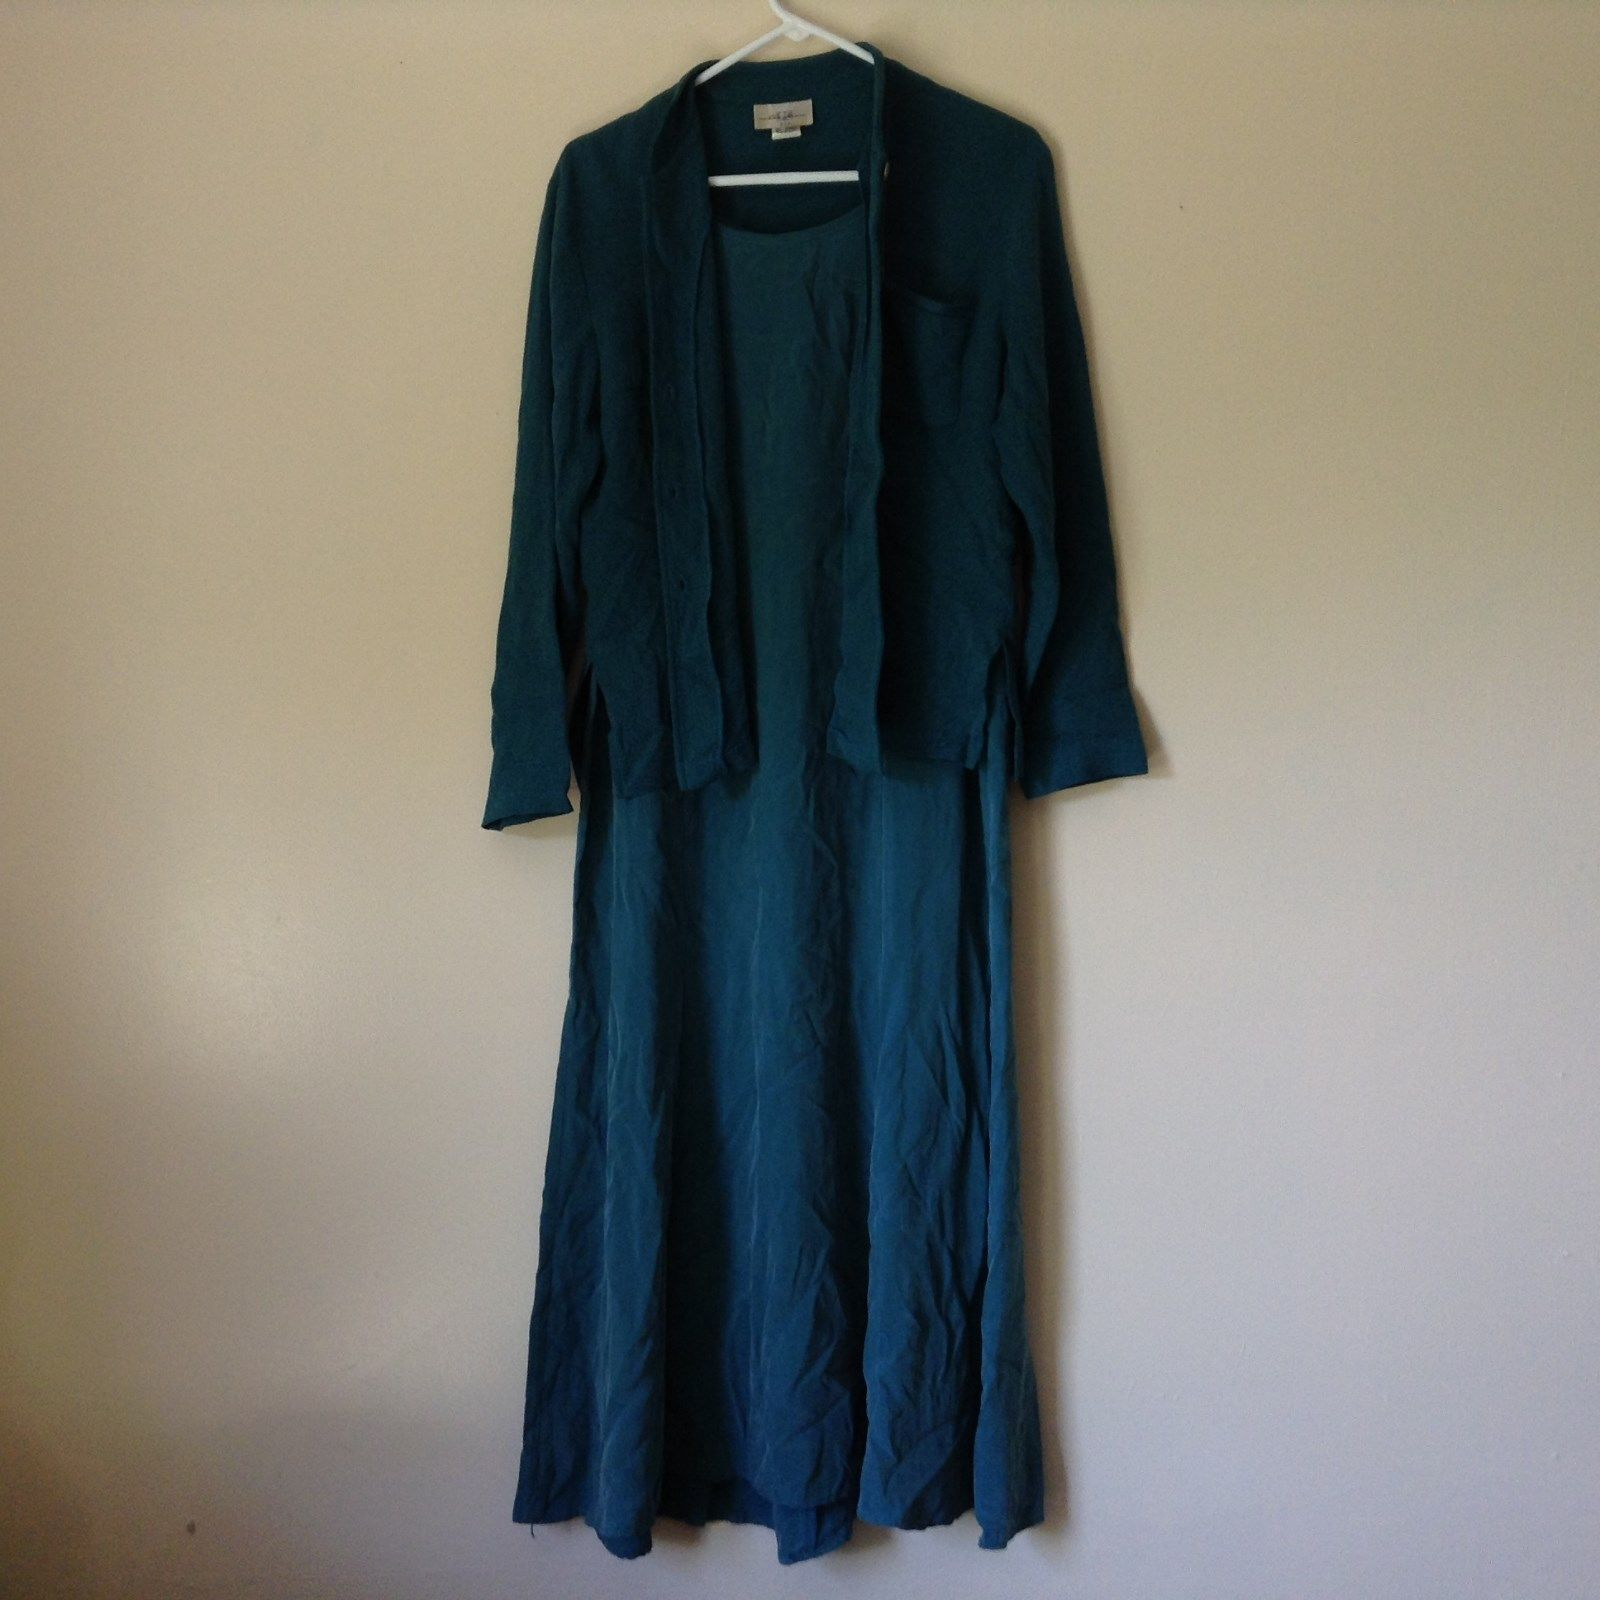 Turquoise Dress and Teal Long Sleeve Jacket I C Fashion Size Medium